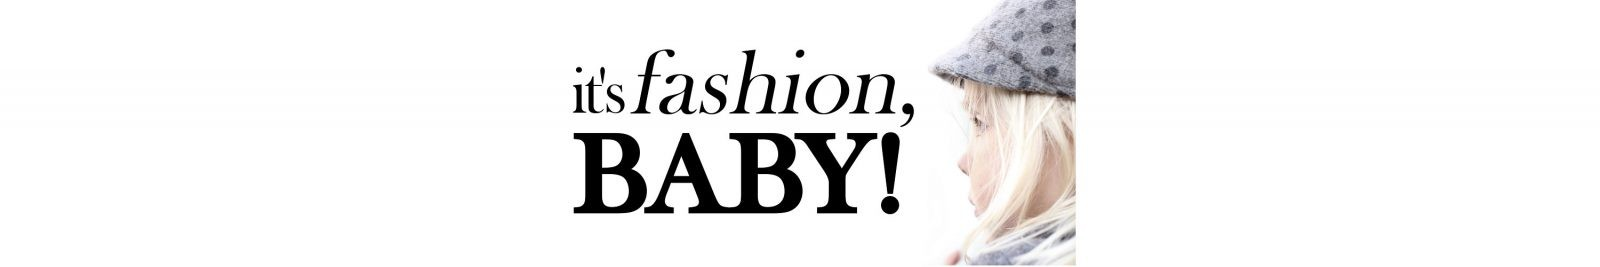 It's Fashion, Baby! - En livsstilsblog om mode til mor & børn